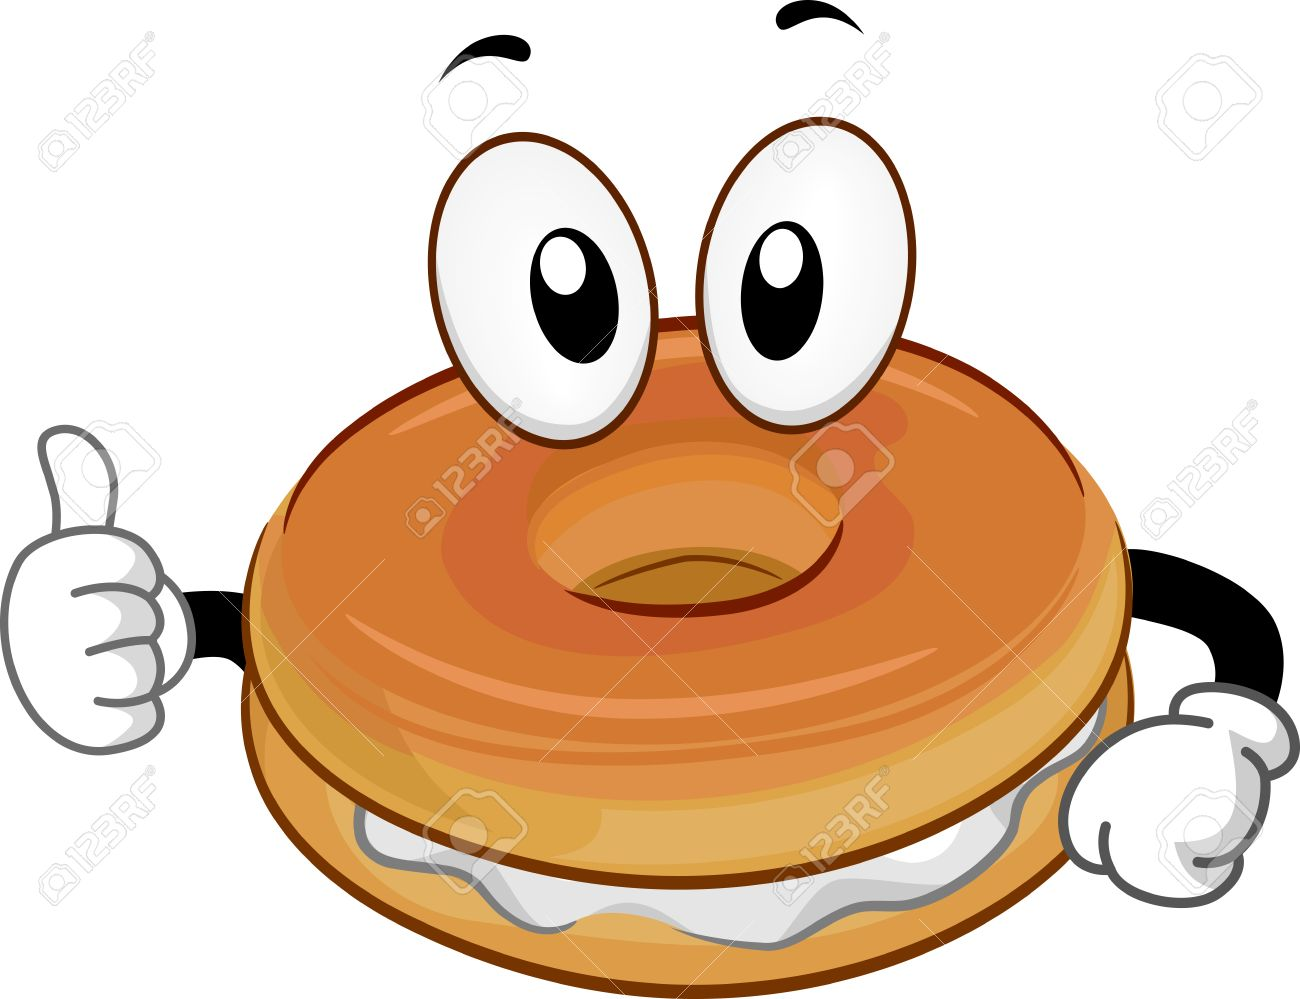 mascot illustration of a bagel giving a thumbs up stock photo rh 123rf com bagel clipart black and white funny bagel clipart